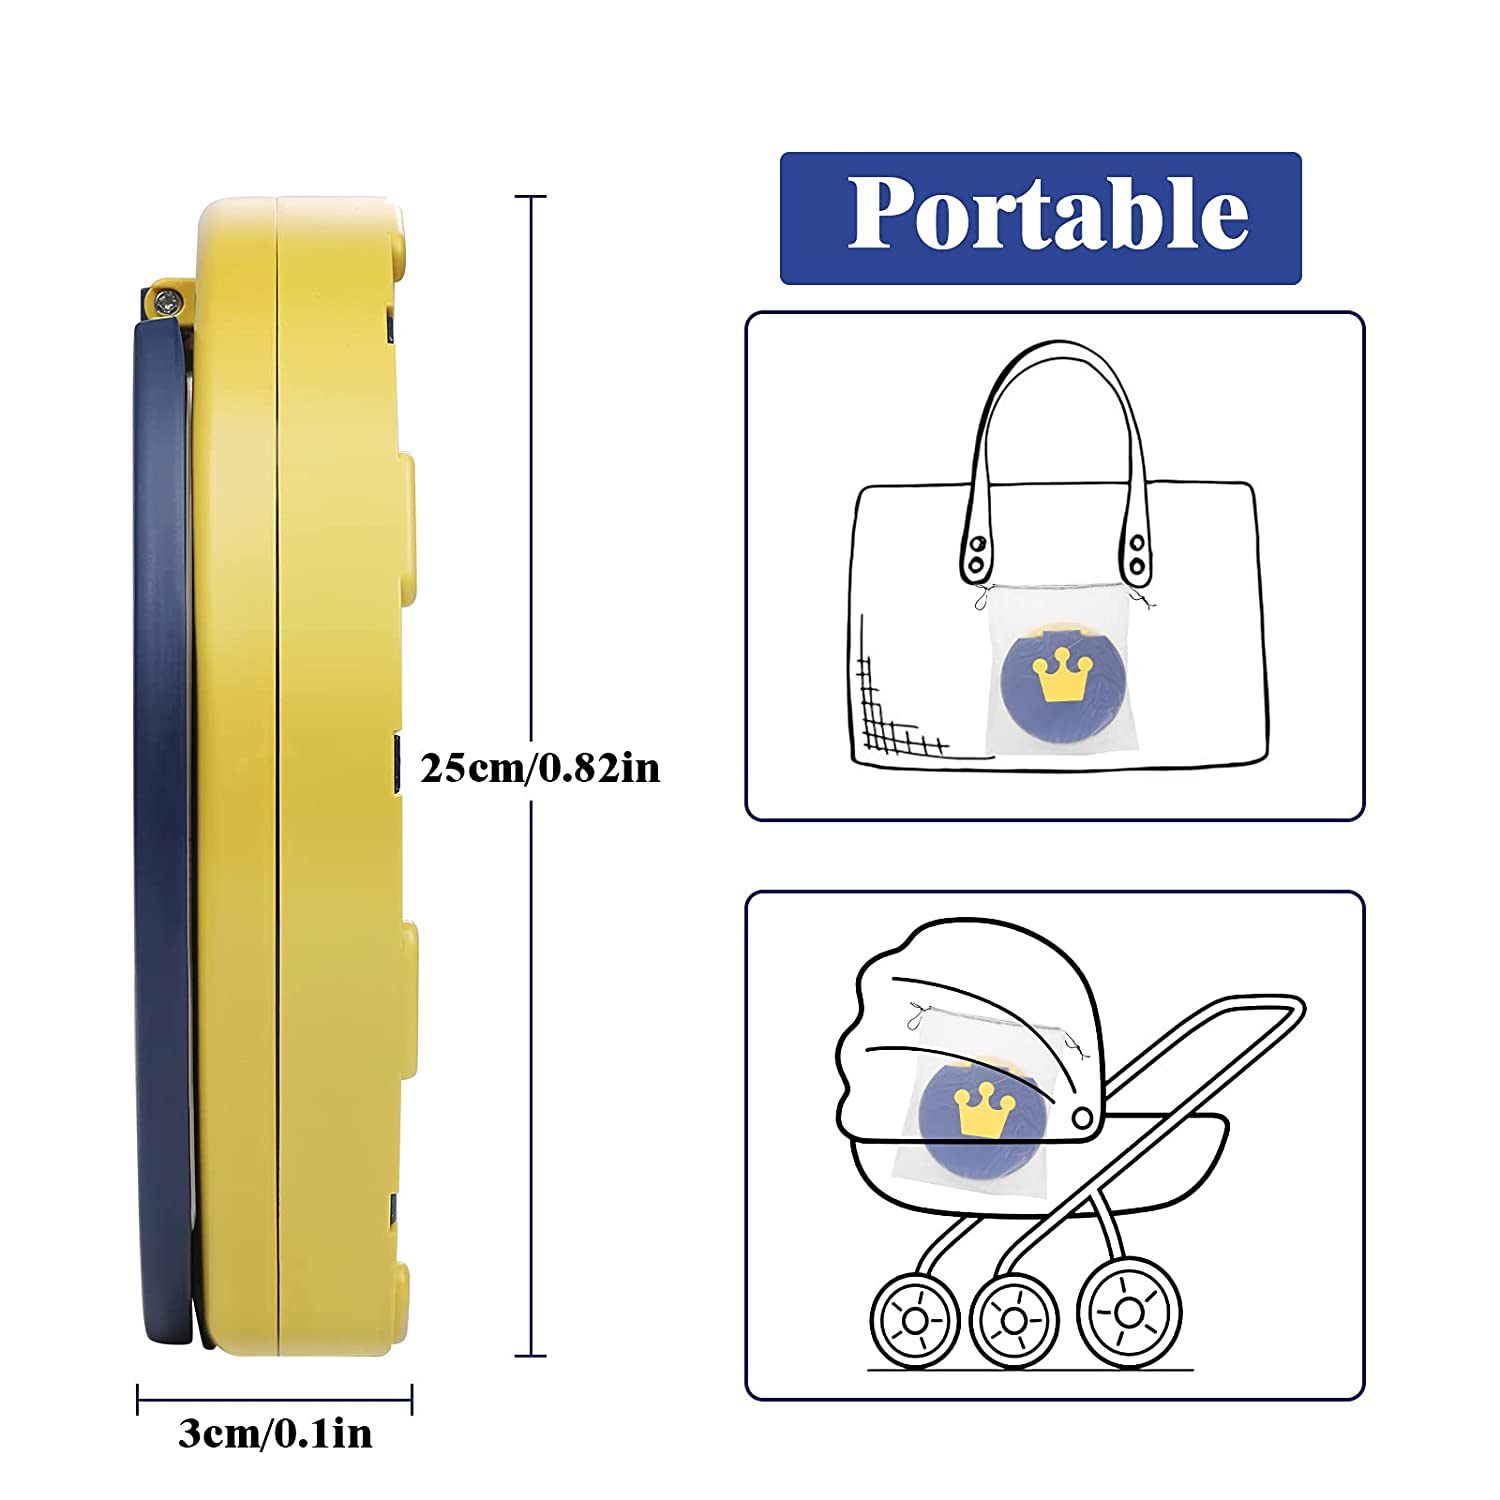 Lictin Portable Potty Training Seat, Kids Travel Potty, Foldable Toilet Seat for Toddlers, Baby Potty with Cleaning Bags for Outdoor